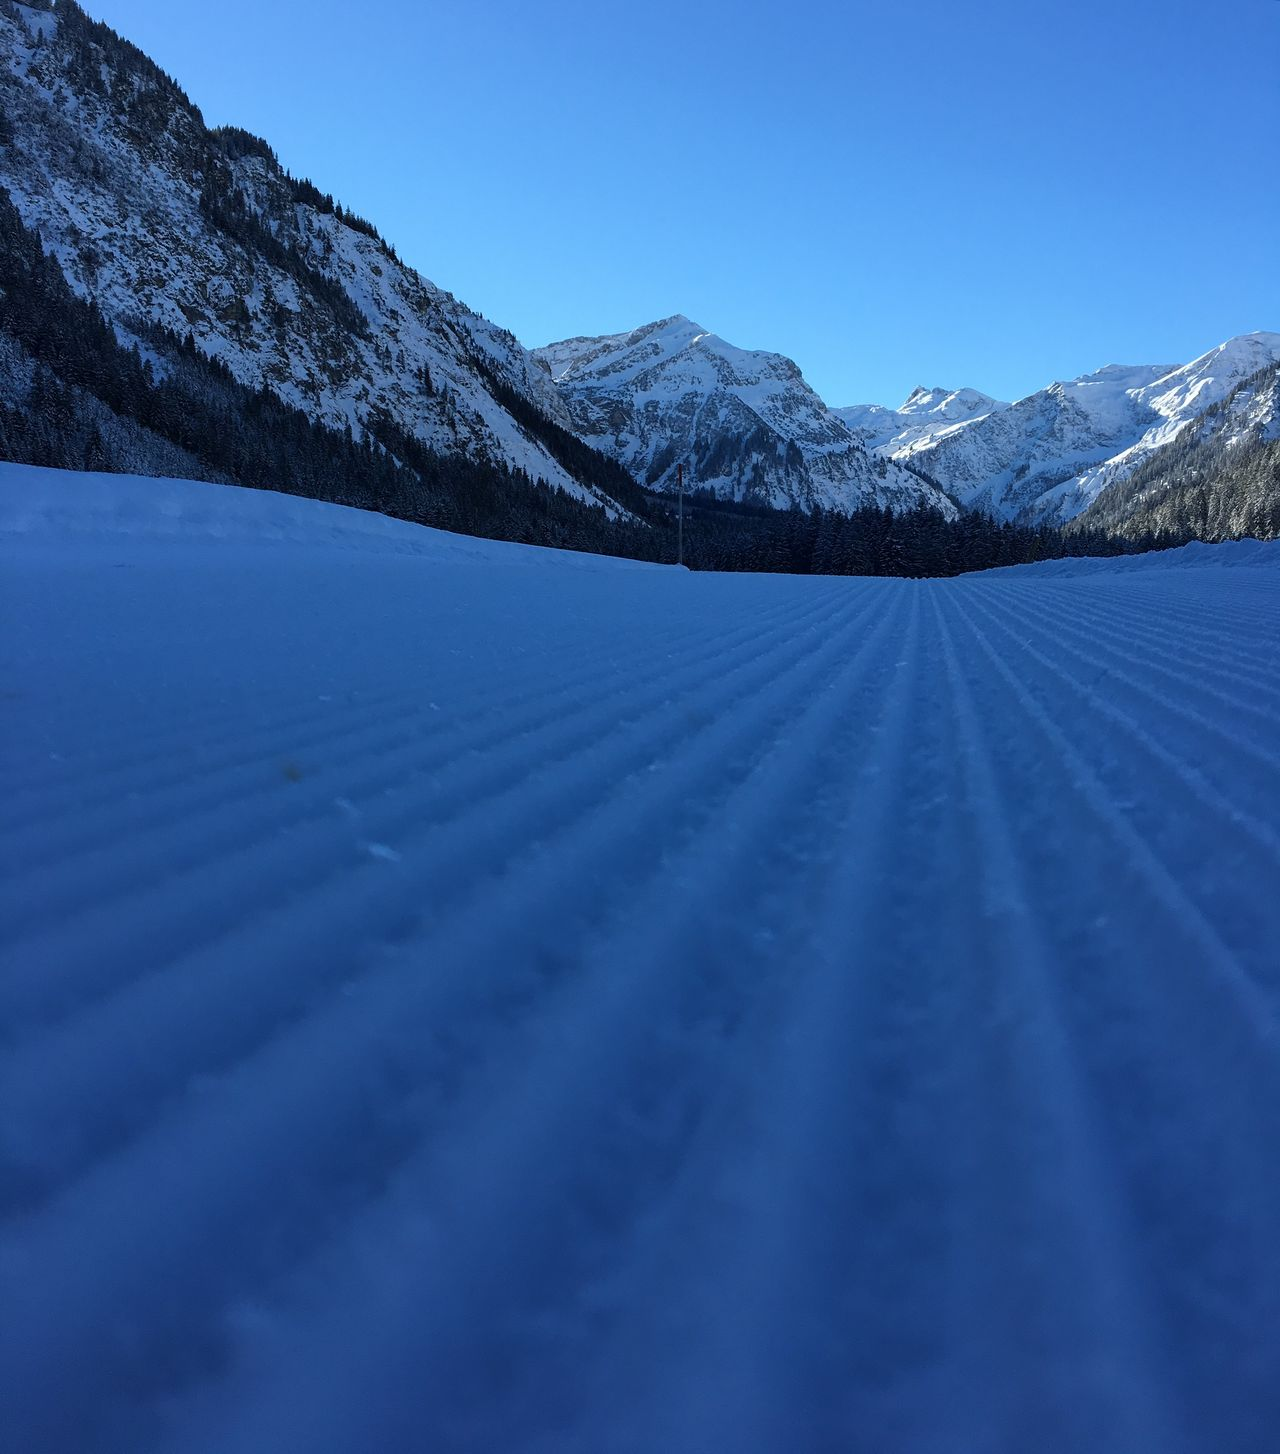 freshly groomed slope :-) Beauty In Nature Blue Cold Temperature Cross Country Skiing Early Morning I Love Snow Landscape Mountain Nature No People Outdoors Piste Race Scenics Skating Skiing Sky Slope Snow Snowshoeing Sports Unspoiled Winter Wintersport Wintersportarea